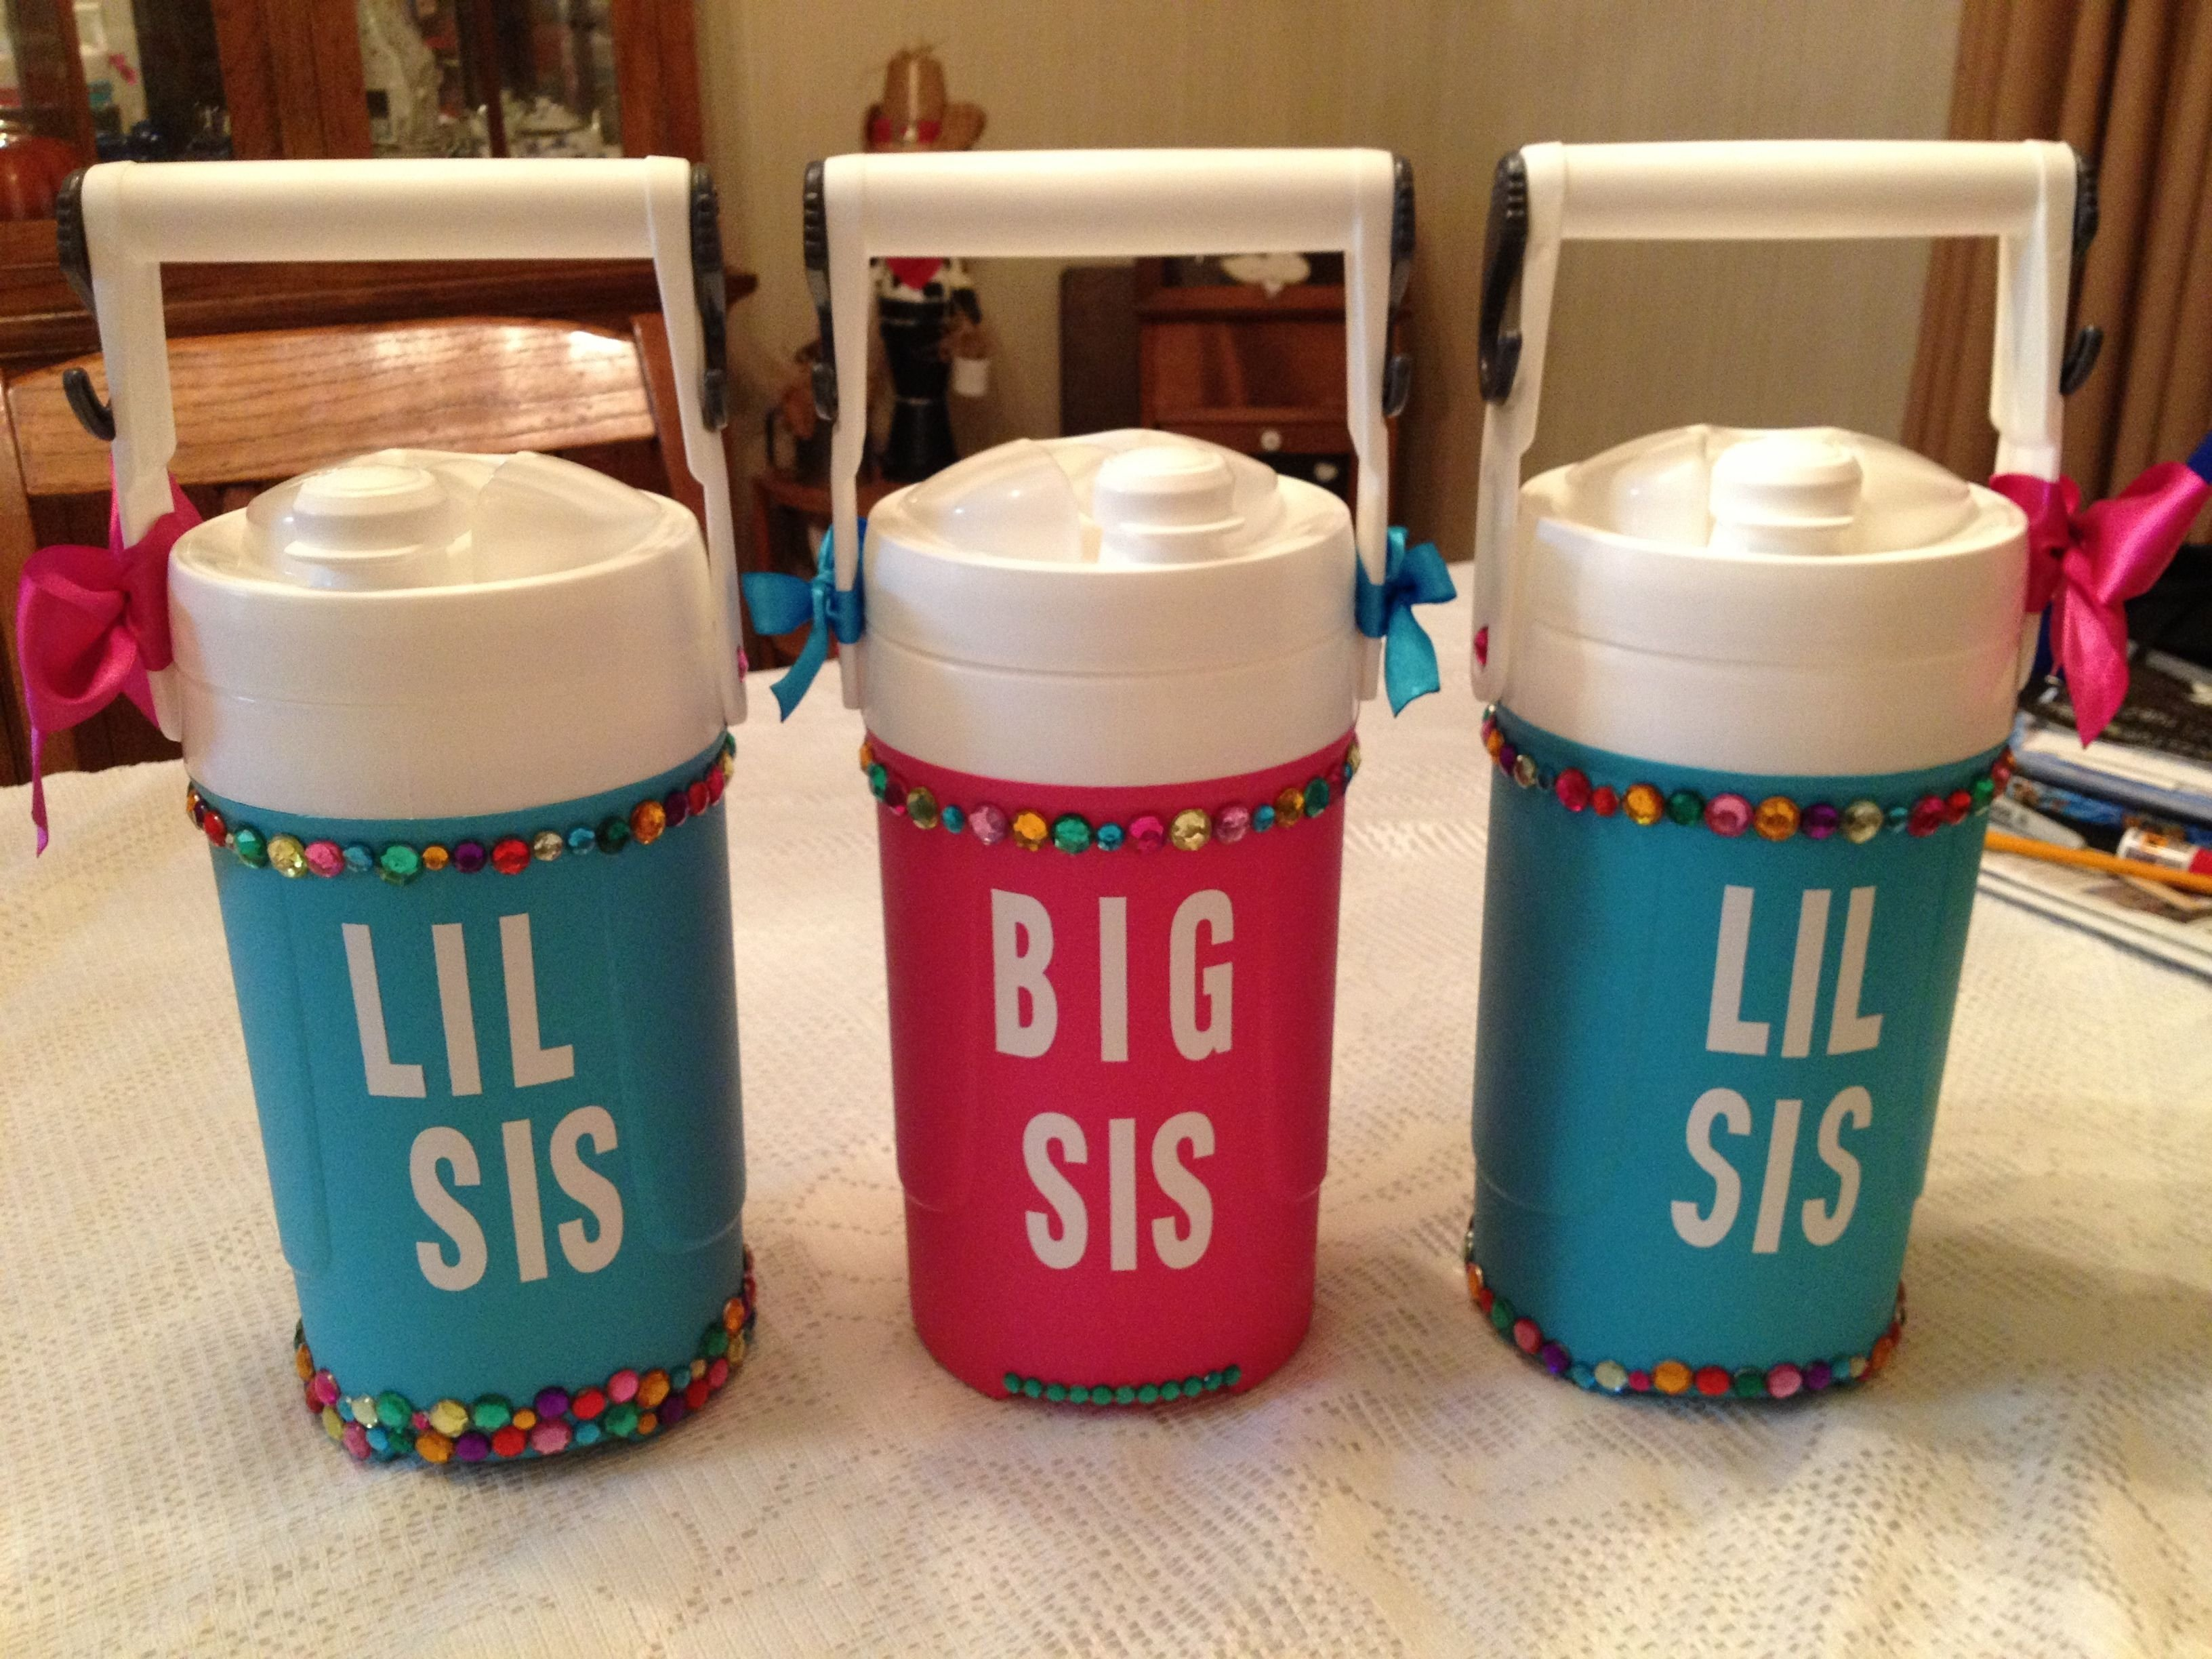 10 Unique Gift Ideas For Big Sister big sis lil sis cheer gifts cheer pinterest lil sis big sis 2020